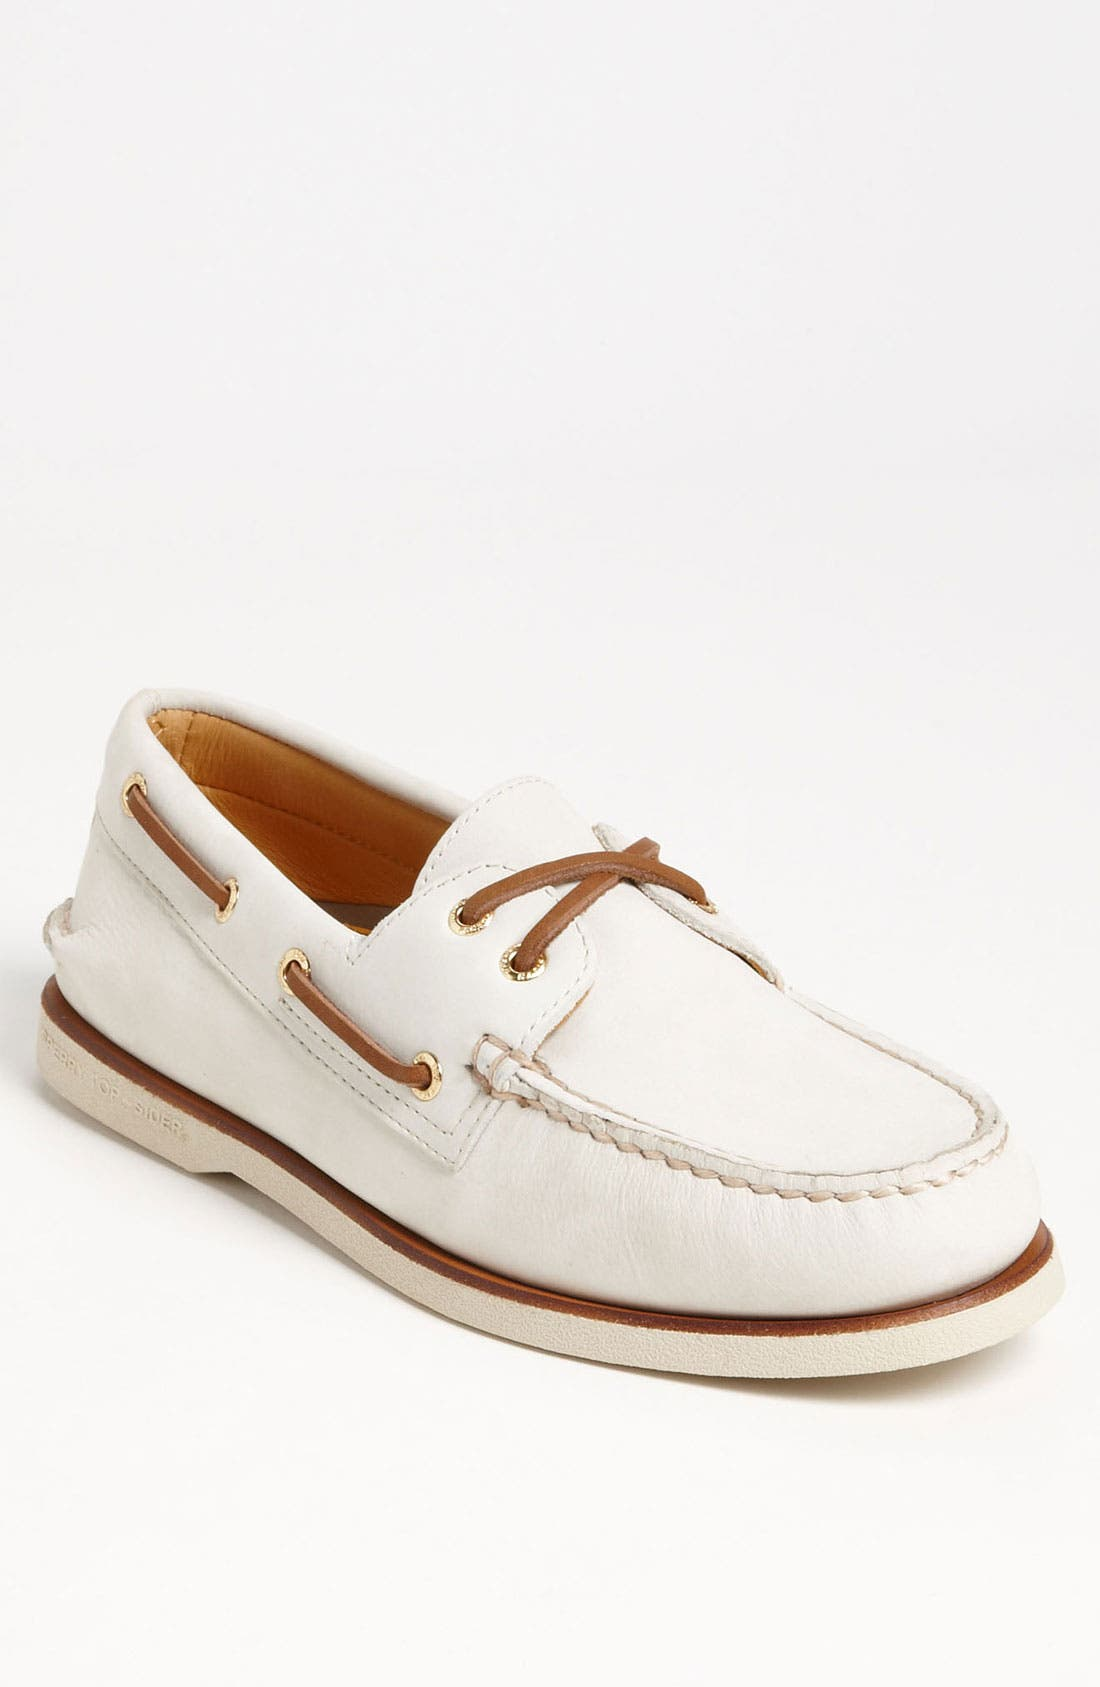 Sperry Authentic Original Gold Cup Boat Shoe Nordstrom